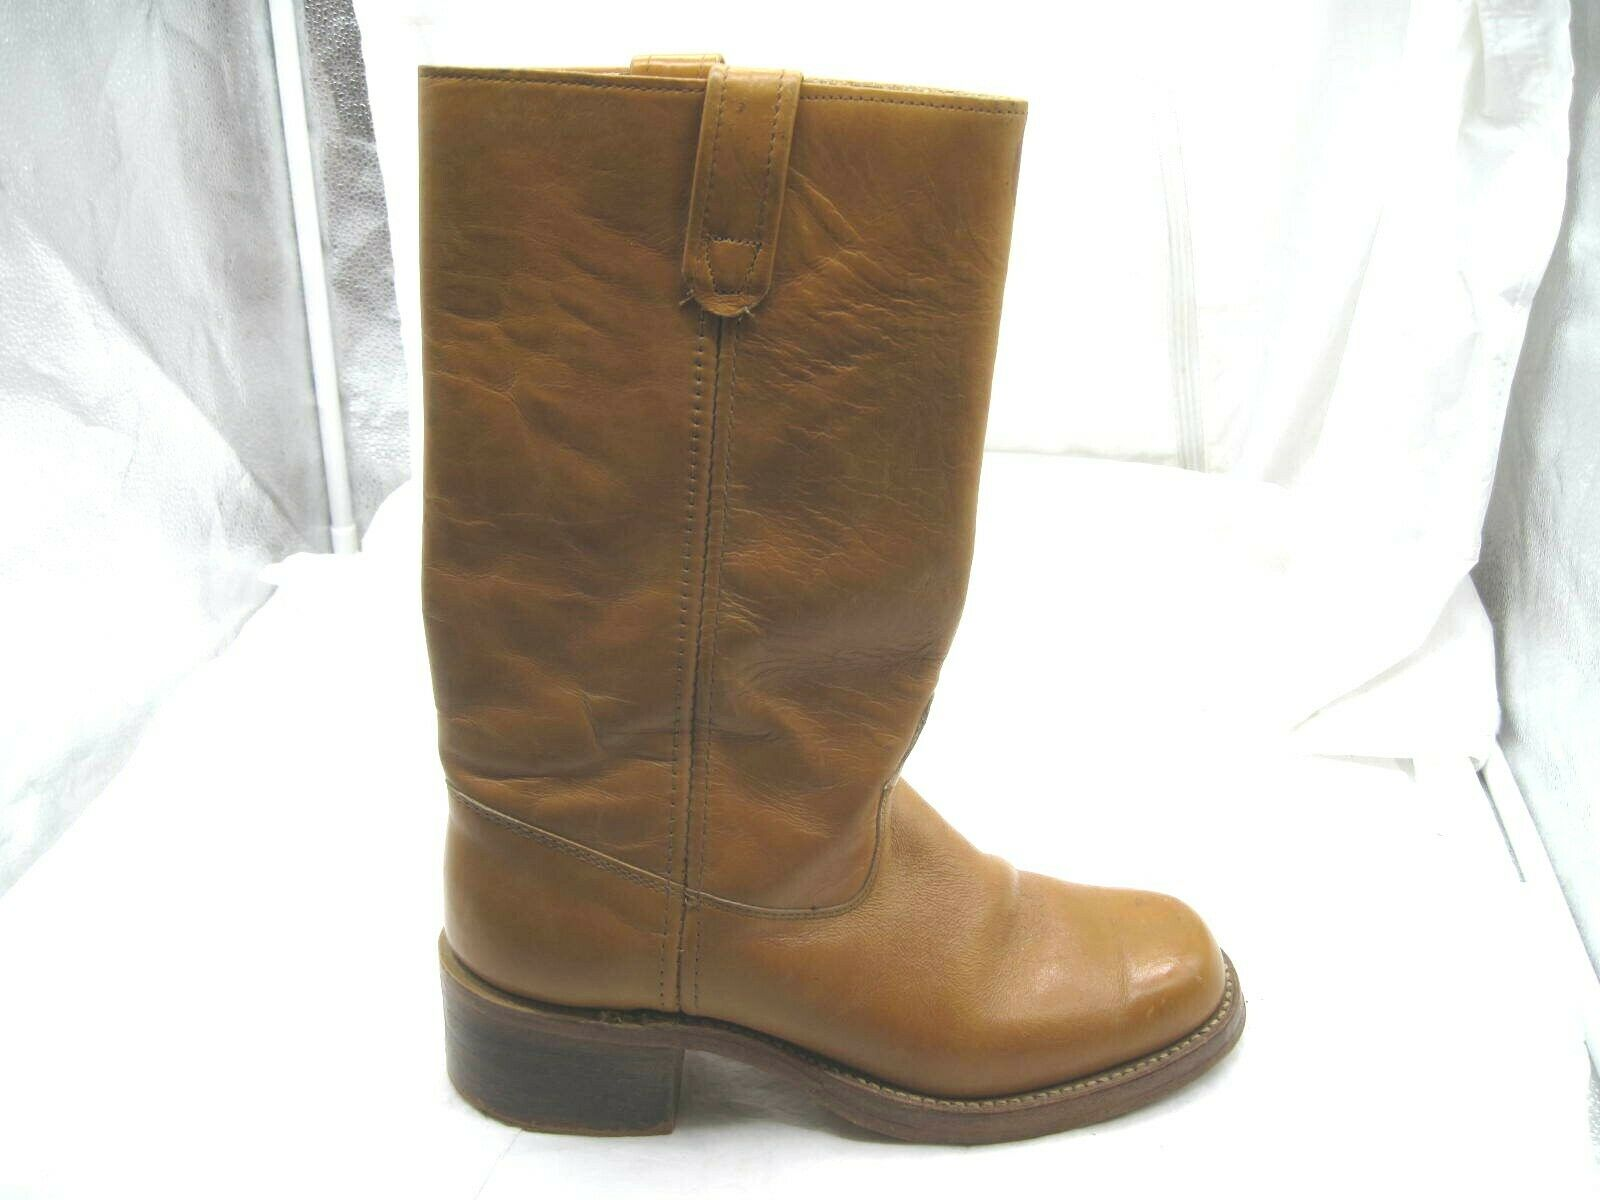 58f207968b36 Vintage Sears tan tan tan brown beige western cowboy Mens 9.5D 42.5 boots  shoes 87533 ...